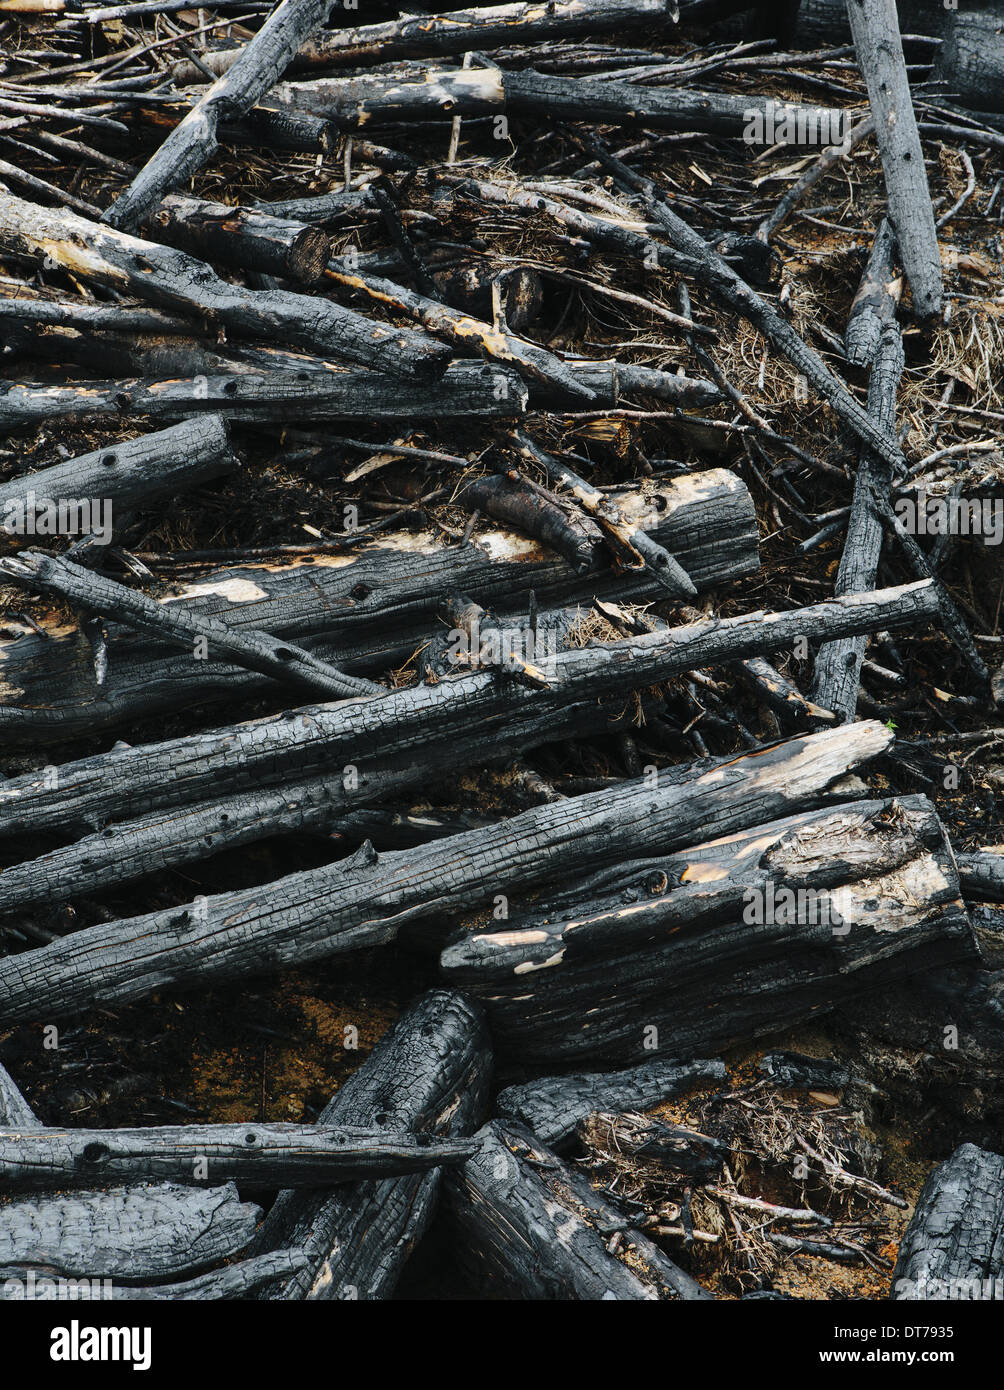 Burned logs and debris from clear cut forest, Olympic NF - Stock Image